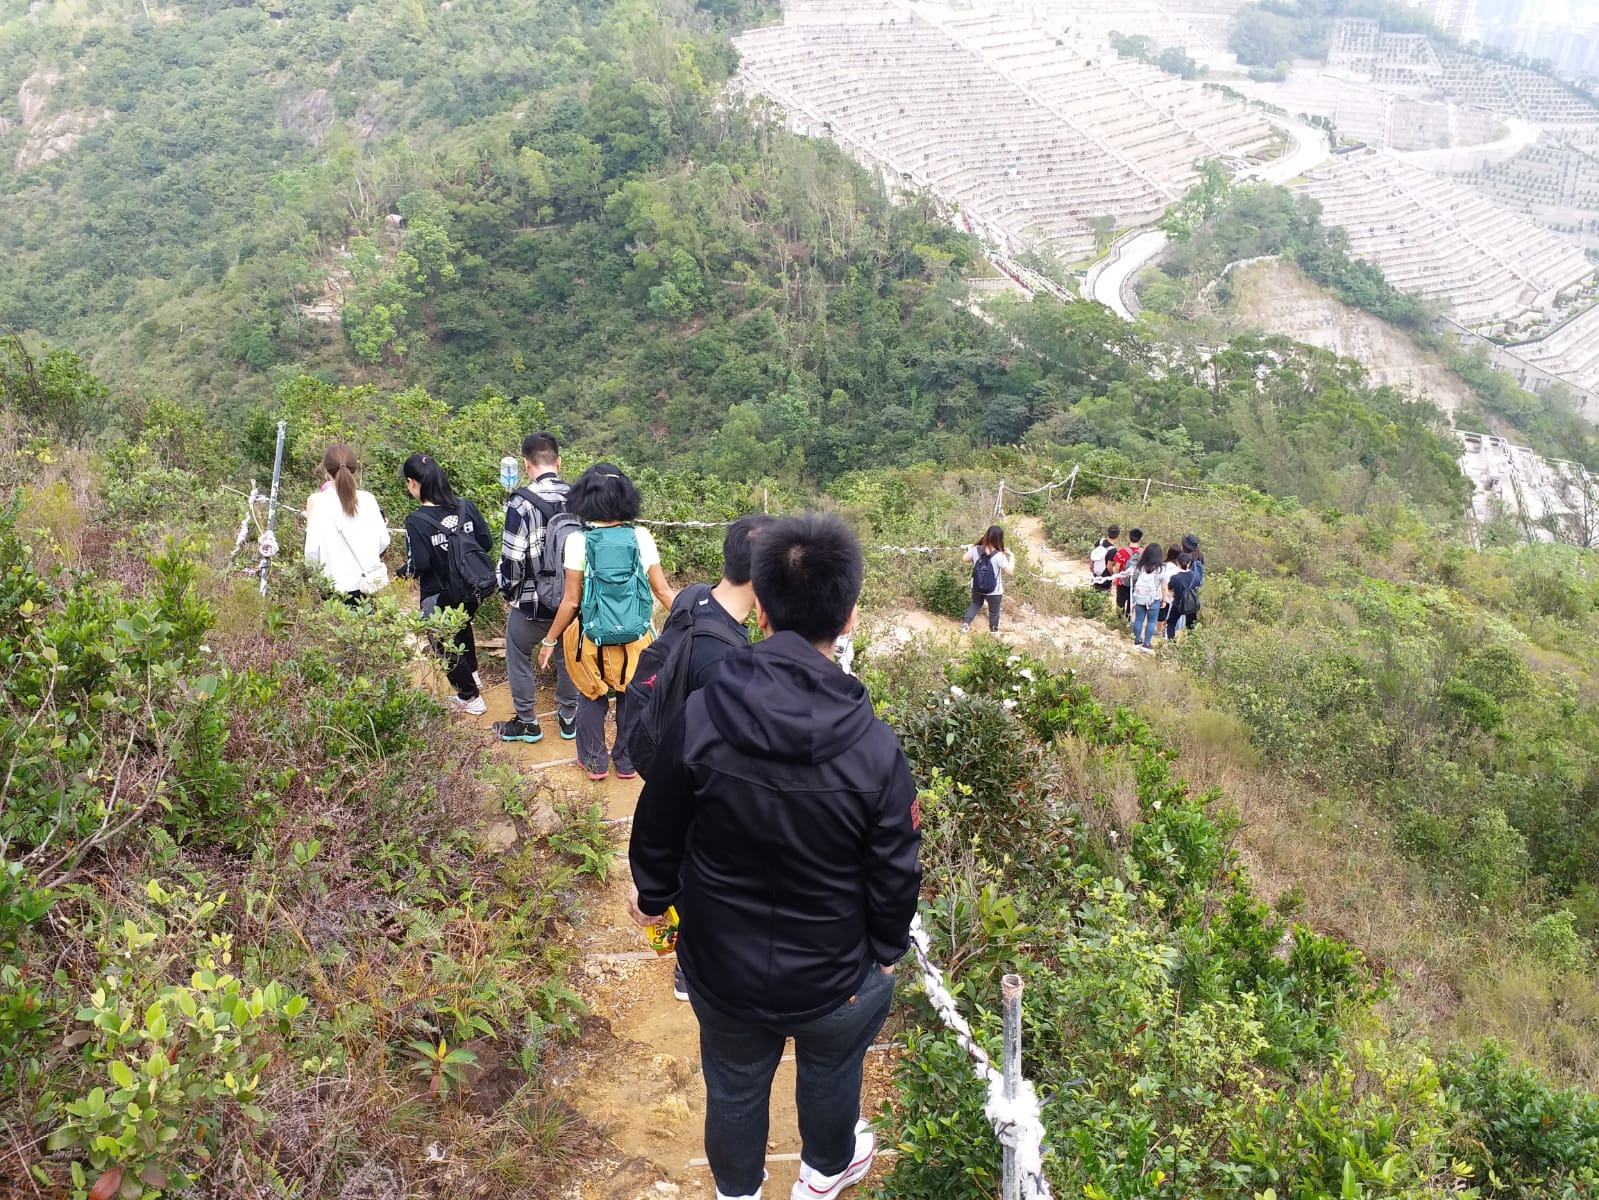 Go Hiking! @ Lei Yun Mun (December 2018)